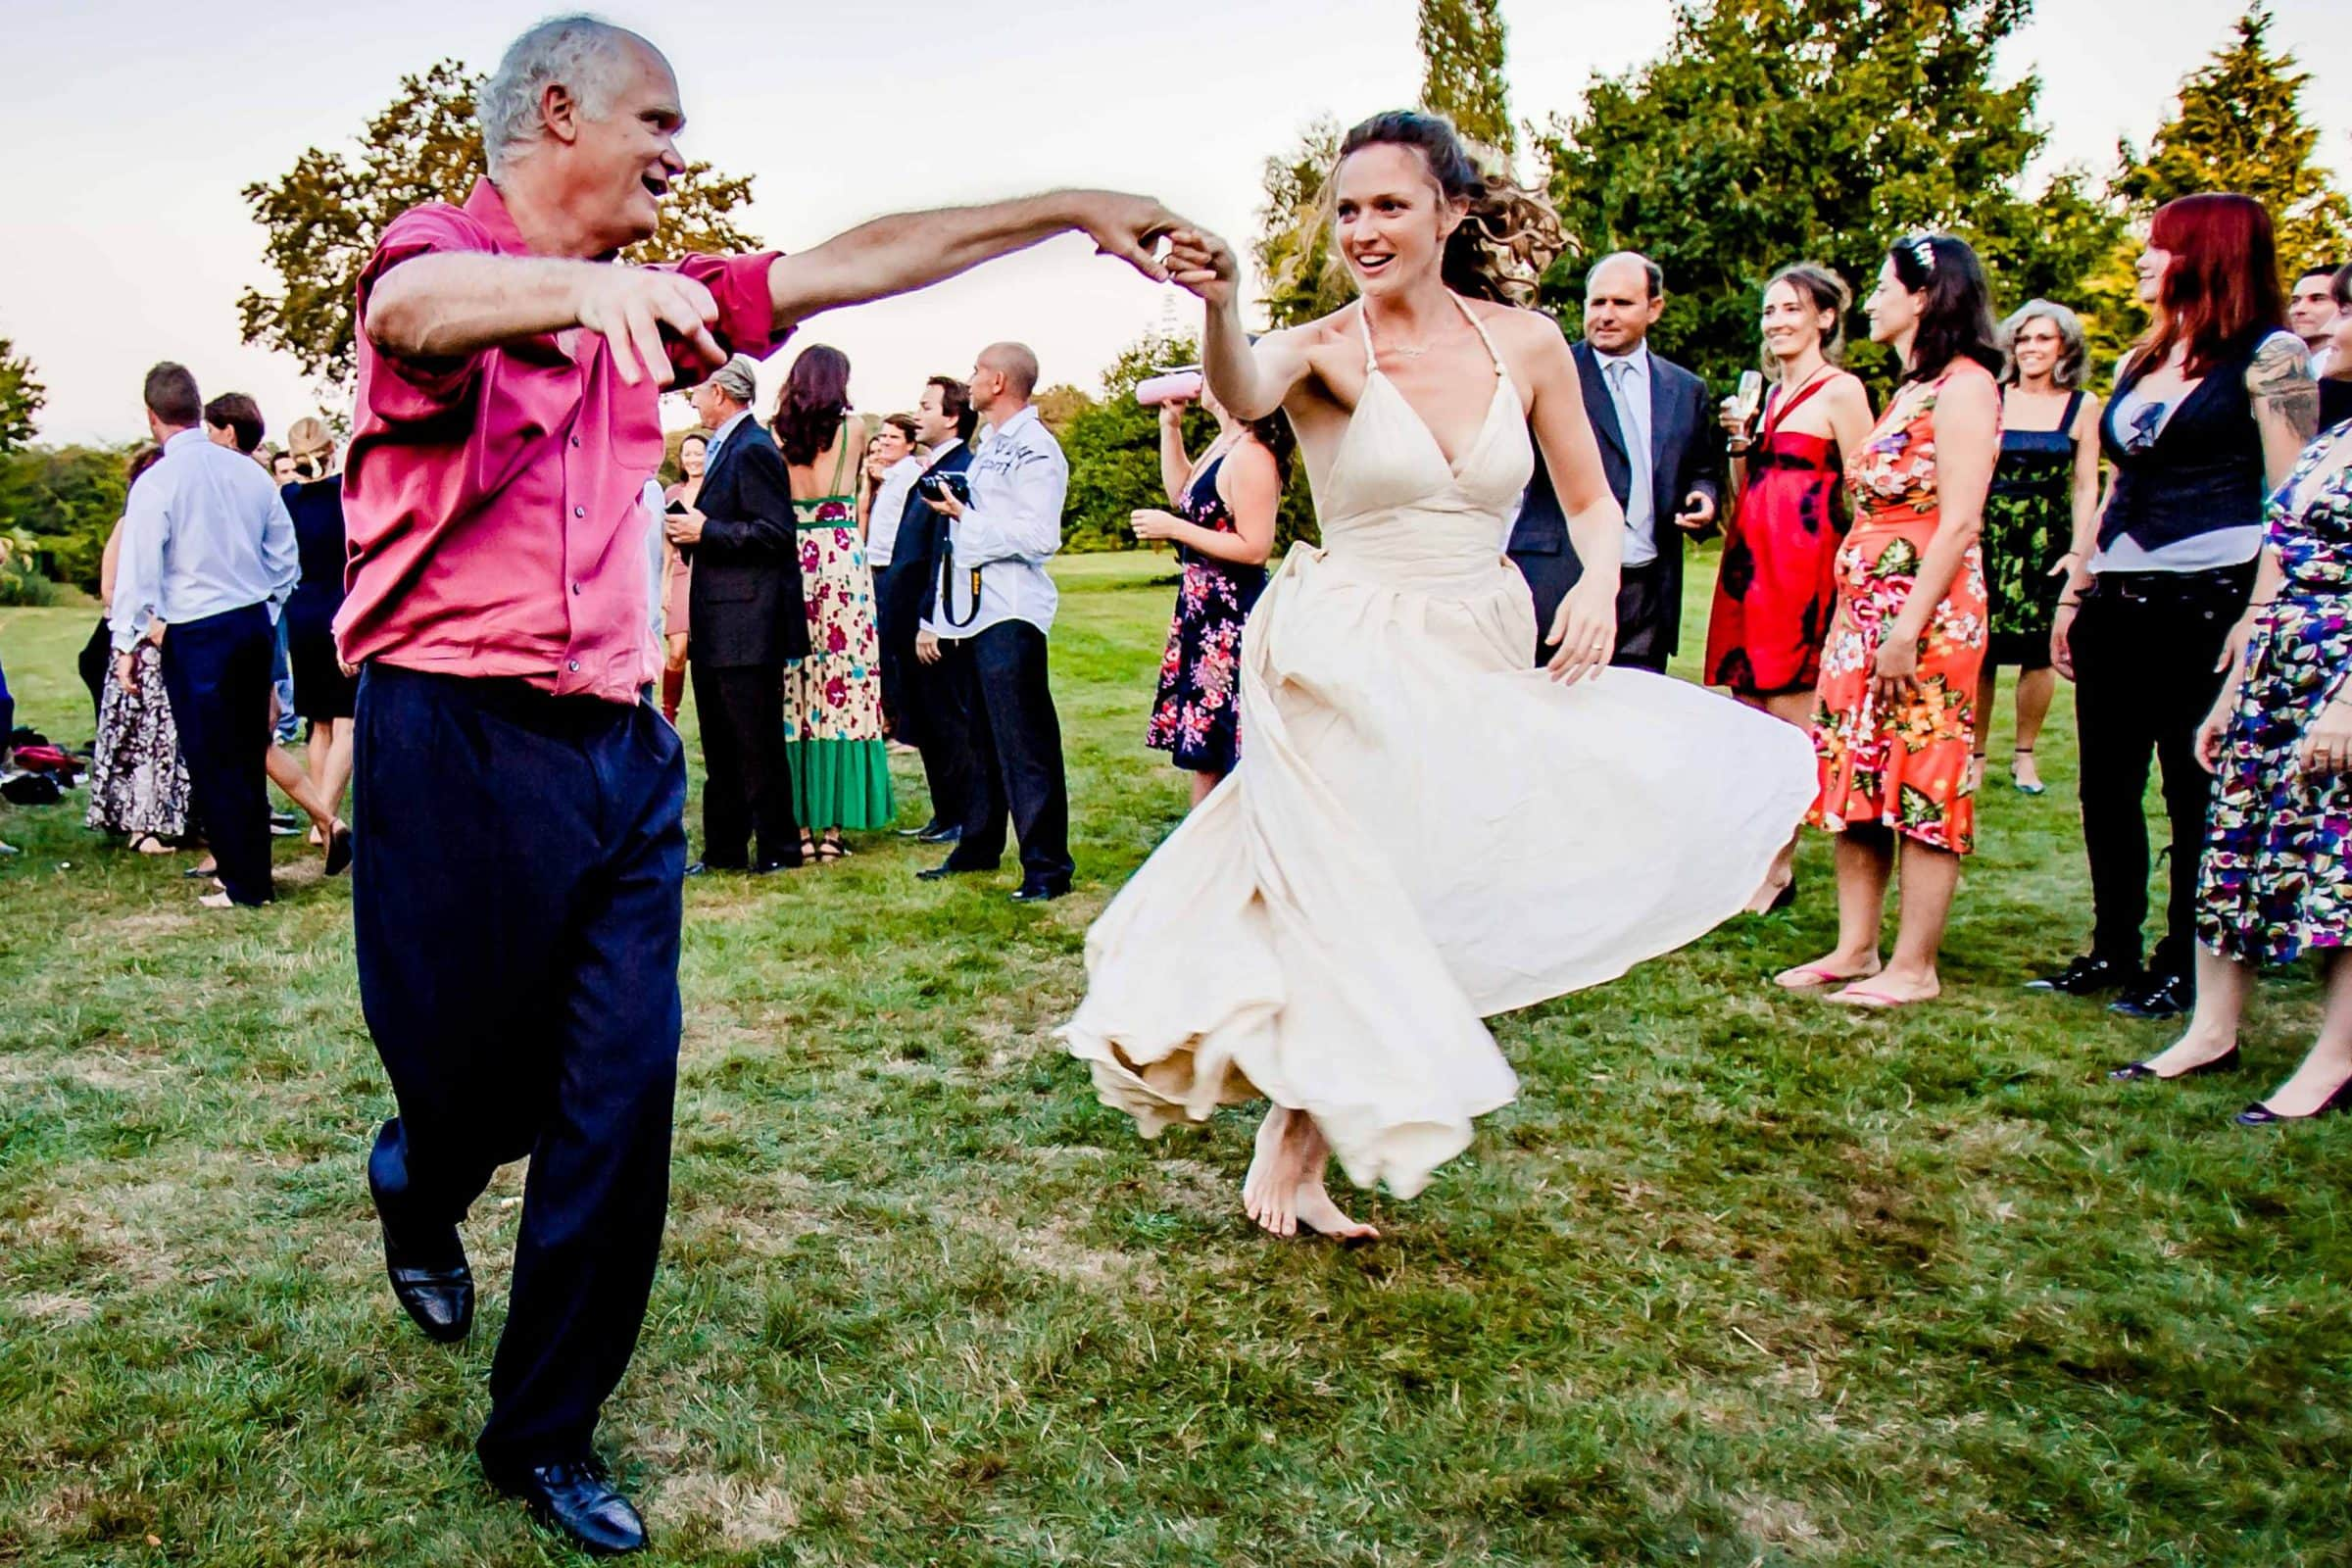 Bride dancing barefoot in Normandy France at Gorgeous Chateau Wedding